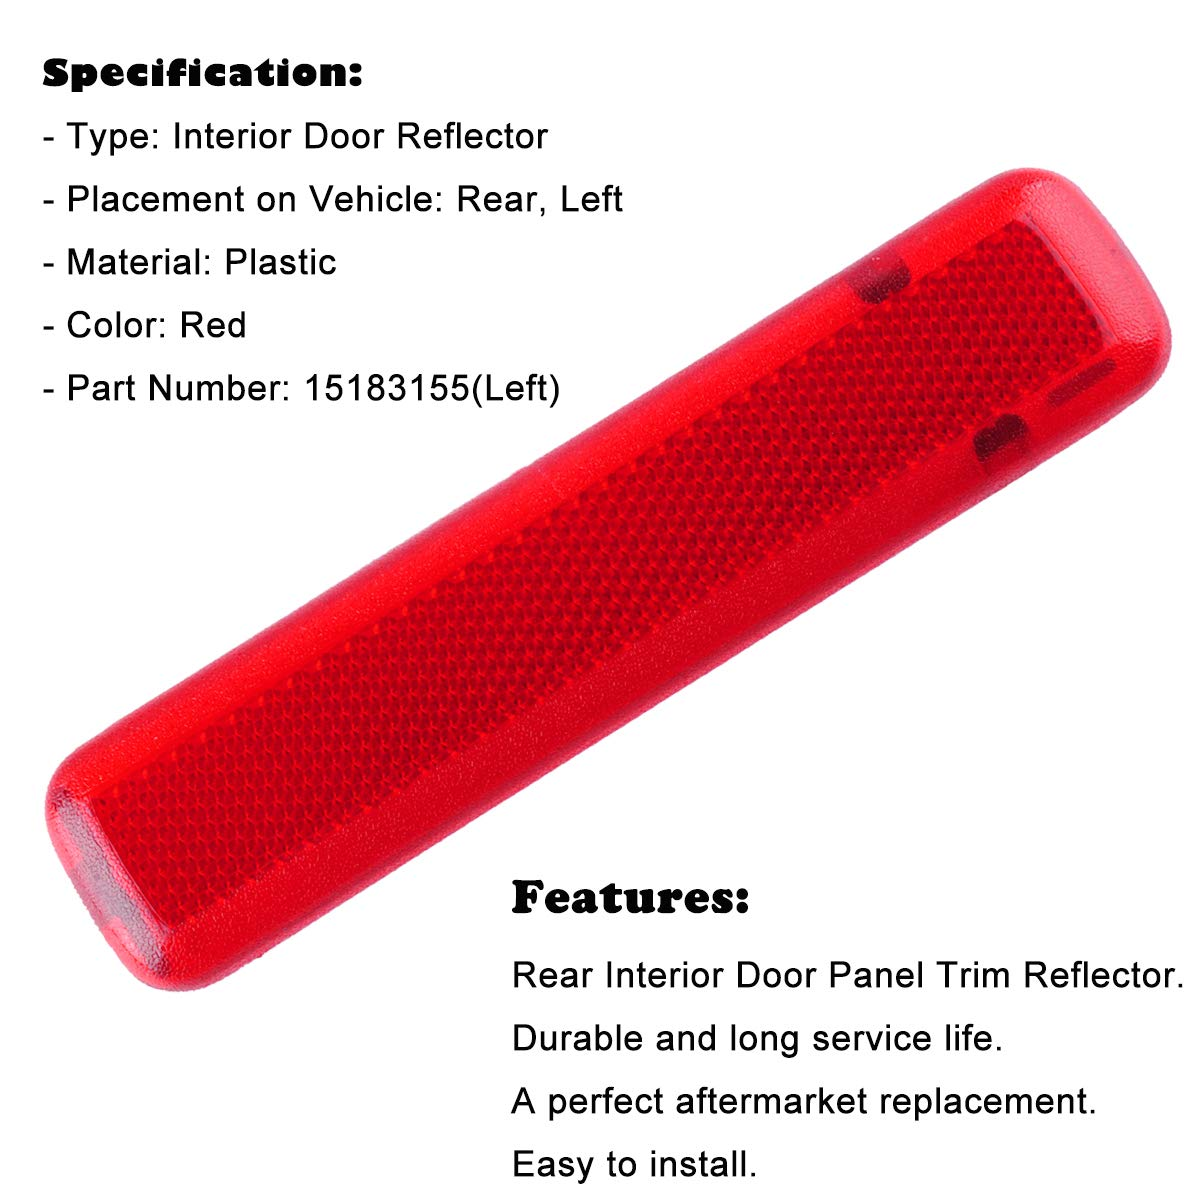 Wadoy Door Panel Reflector Driver Rear for 03-07 Chevy GMC Trucks SUVs Left Trim Red 15183155 74367 Wadoy 15183155